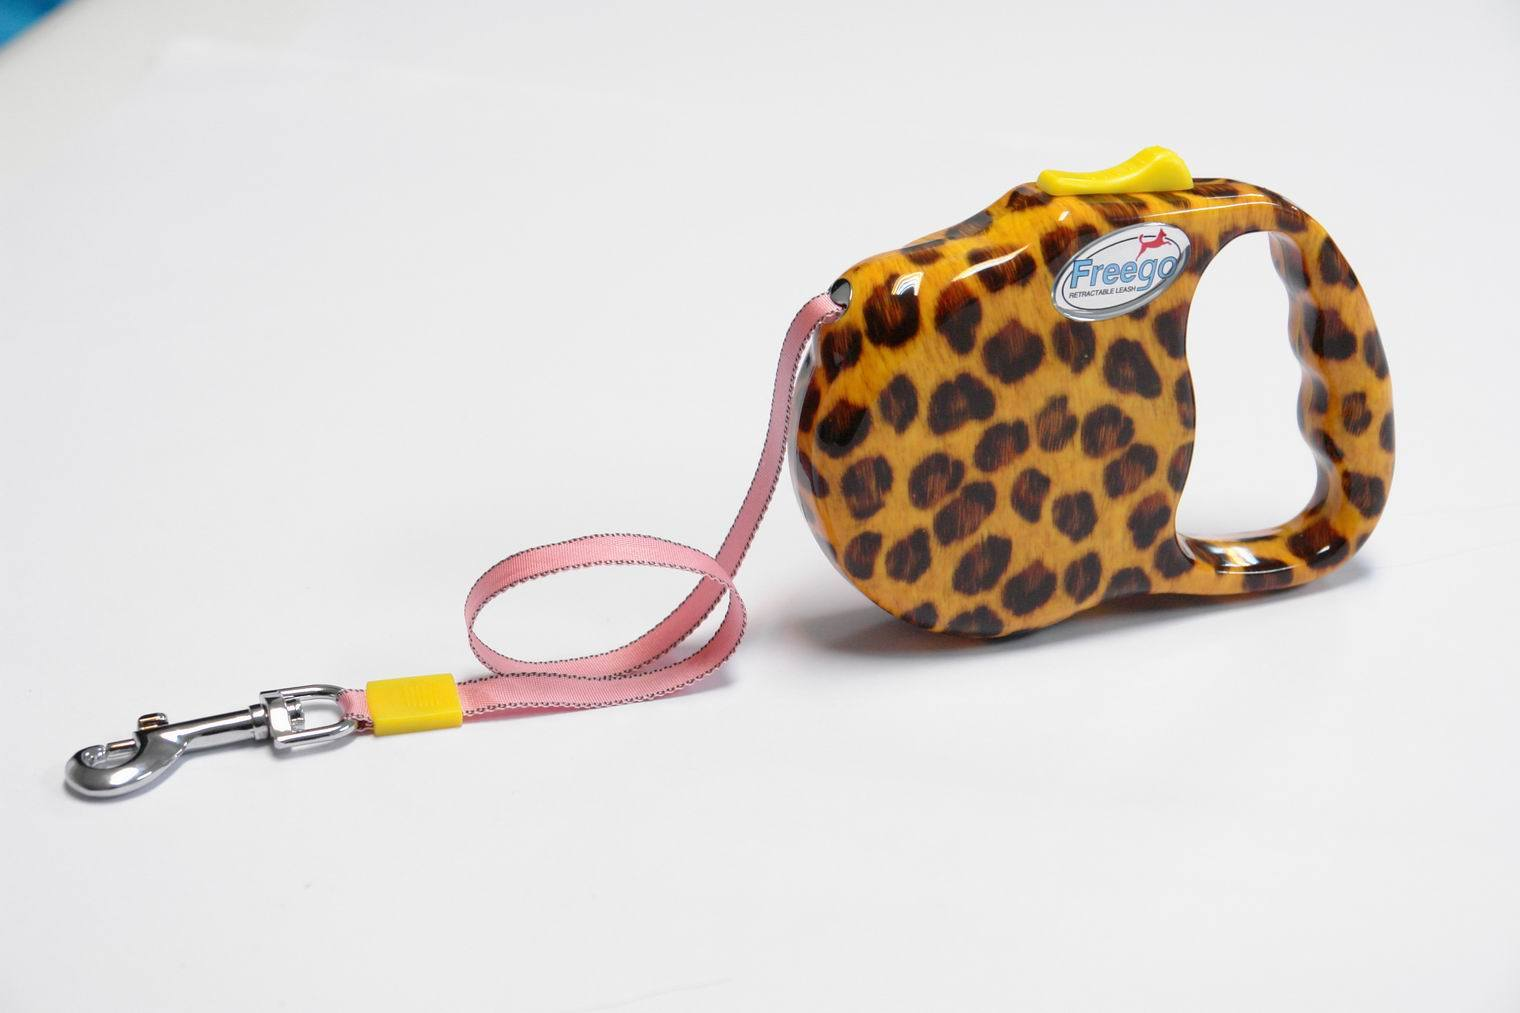 Retractable dog leash packaging